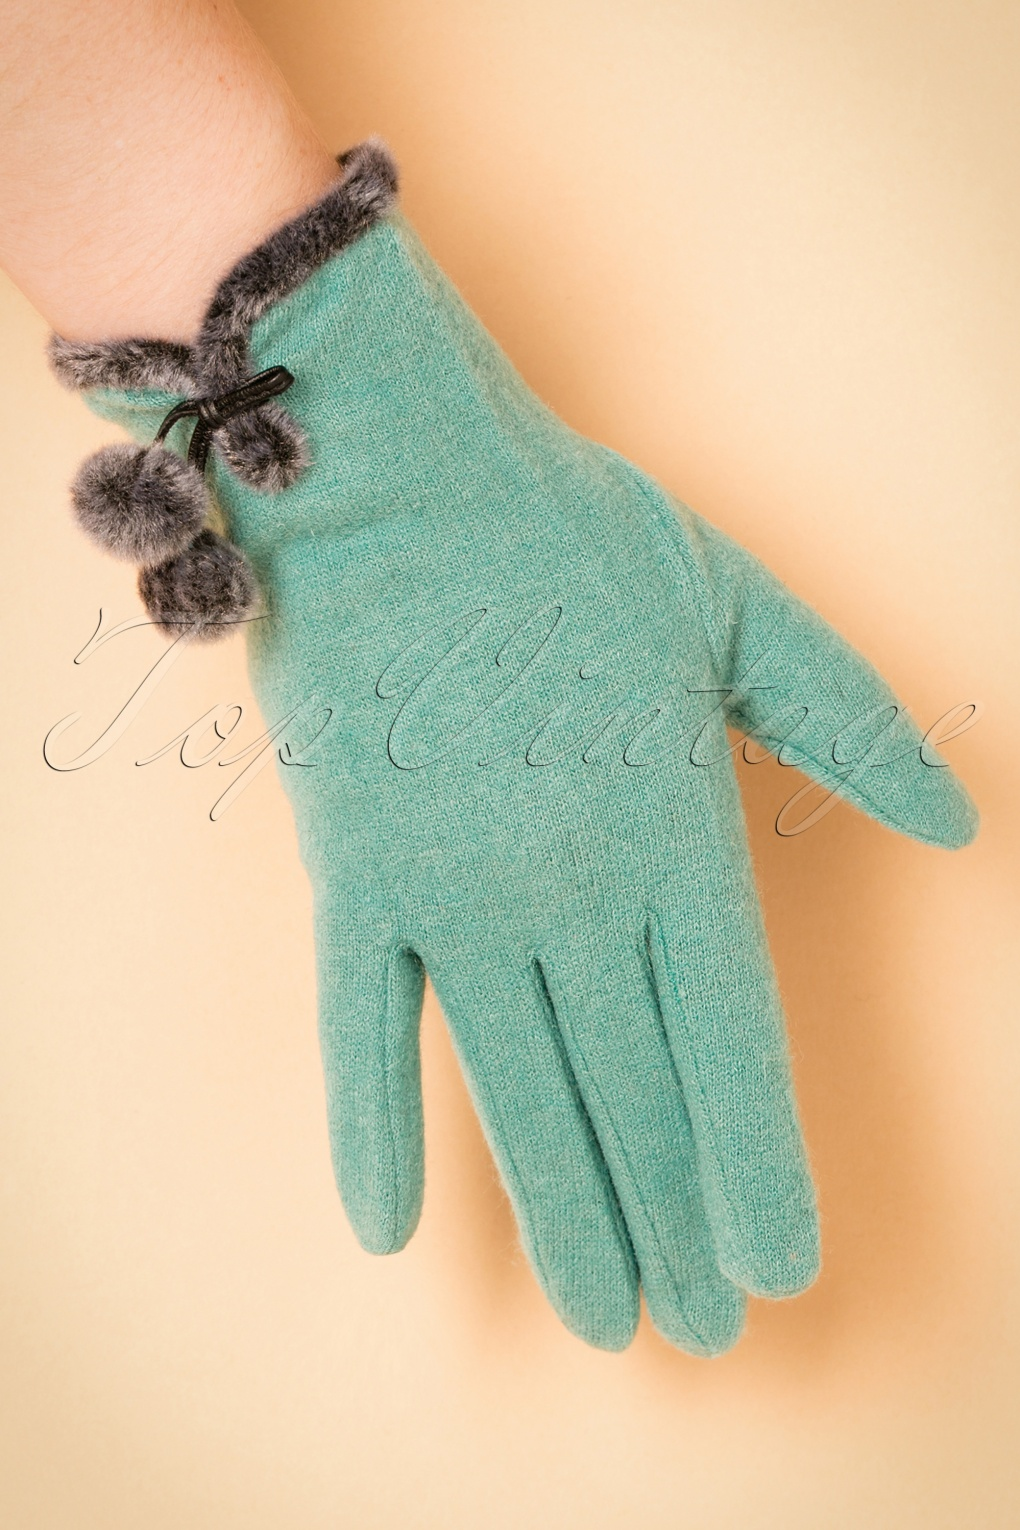 Vintage Style Gloves 40s Betty Pompom Wool Gloves in Sea Green £26.17 AT vintagedancer.com